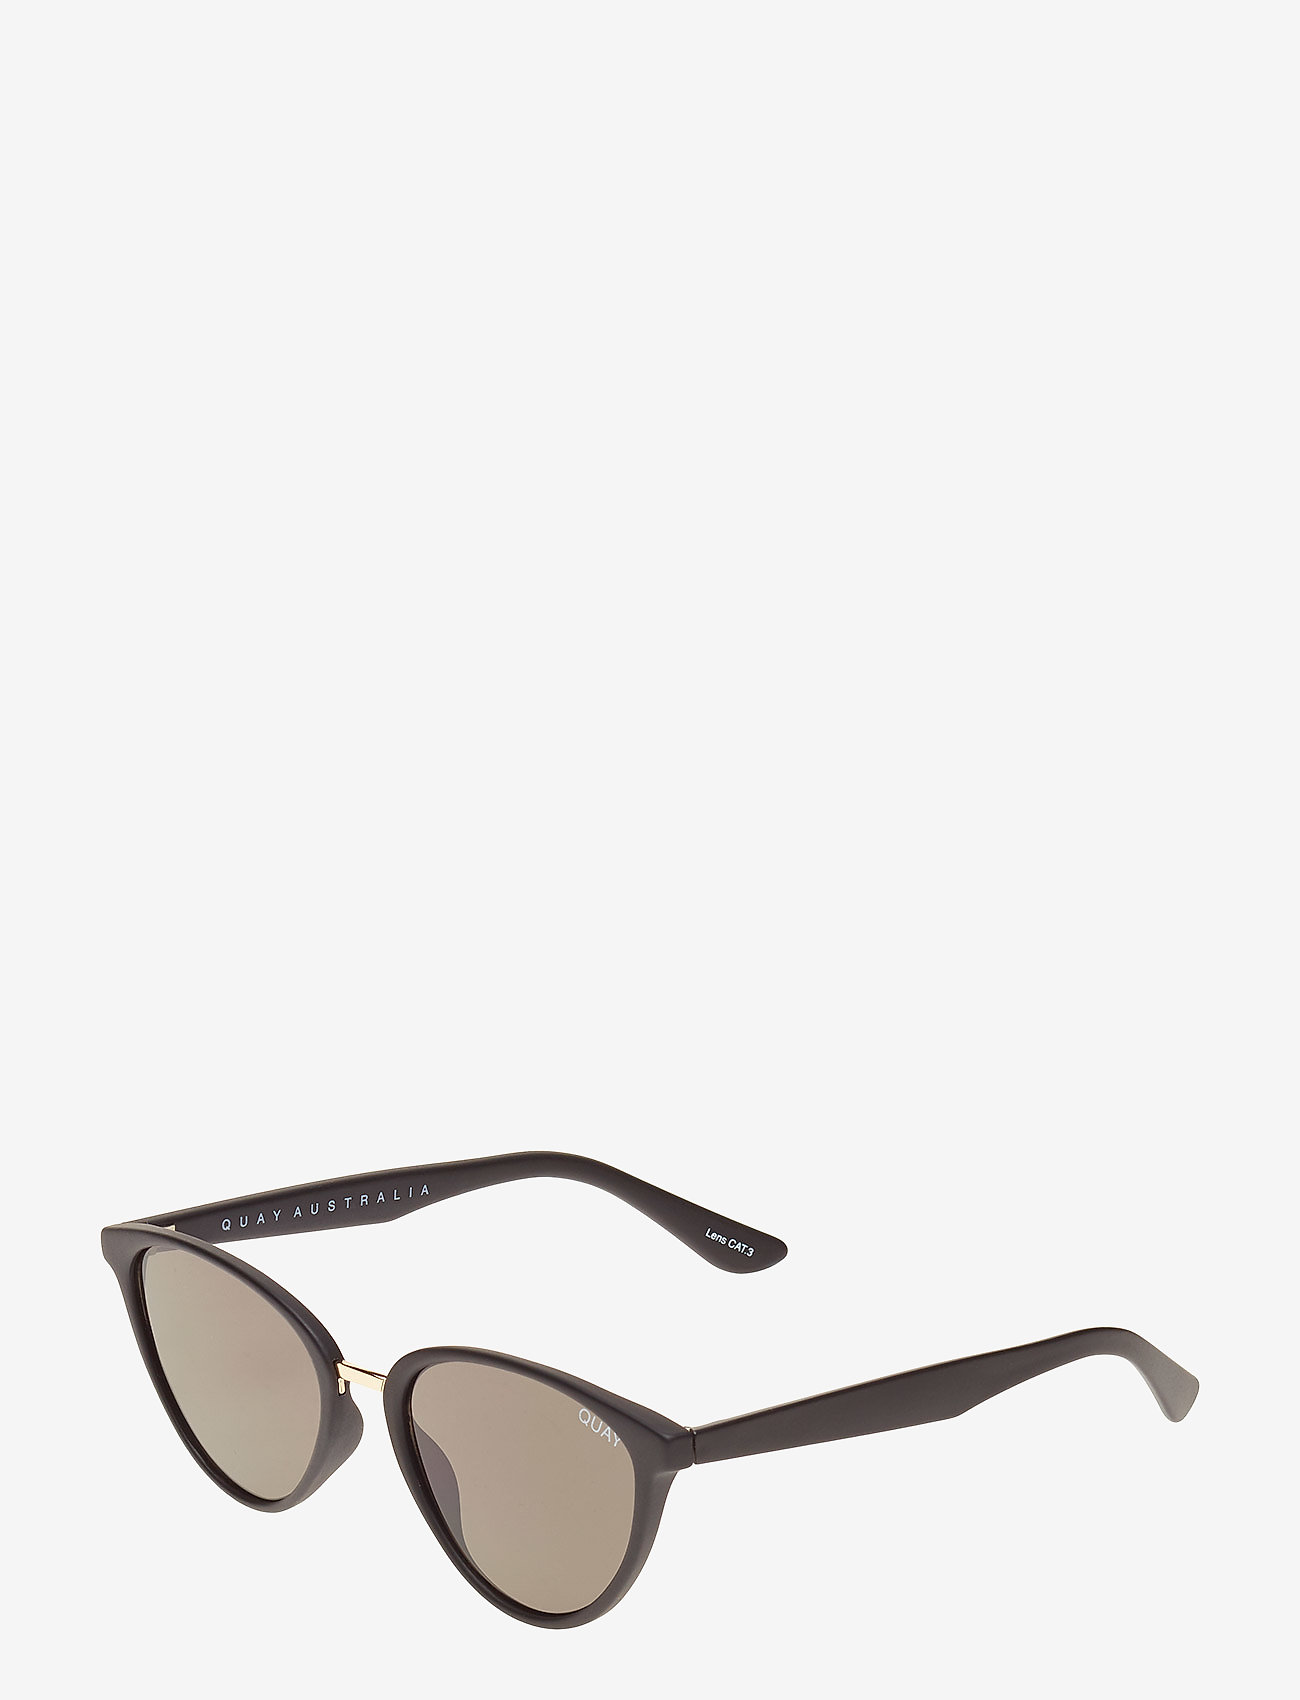 QUAY AUSTRALIA - RUMOURS - cat-eye - black / smoke lens - 1